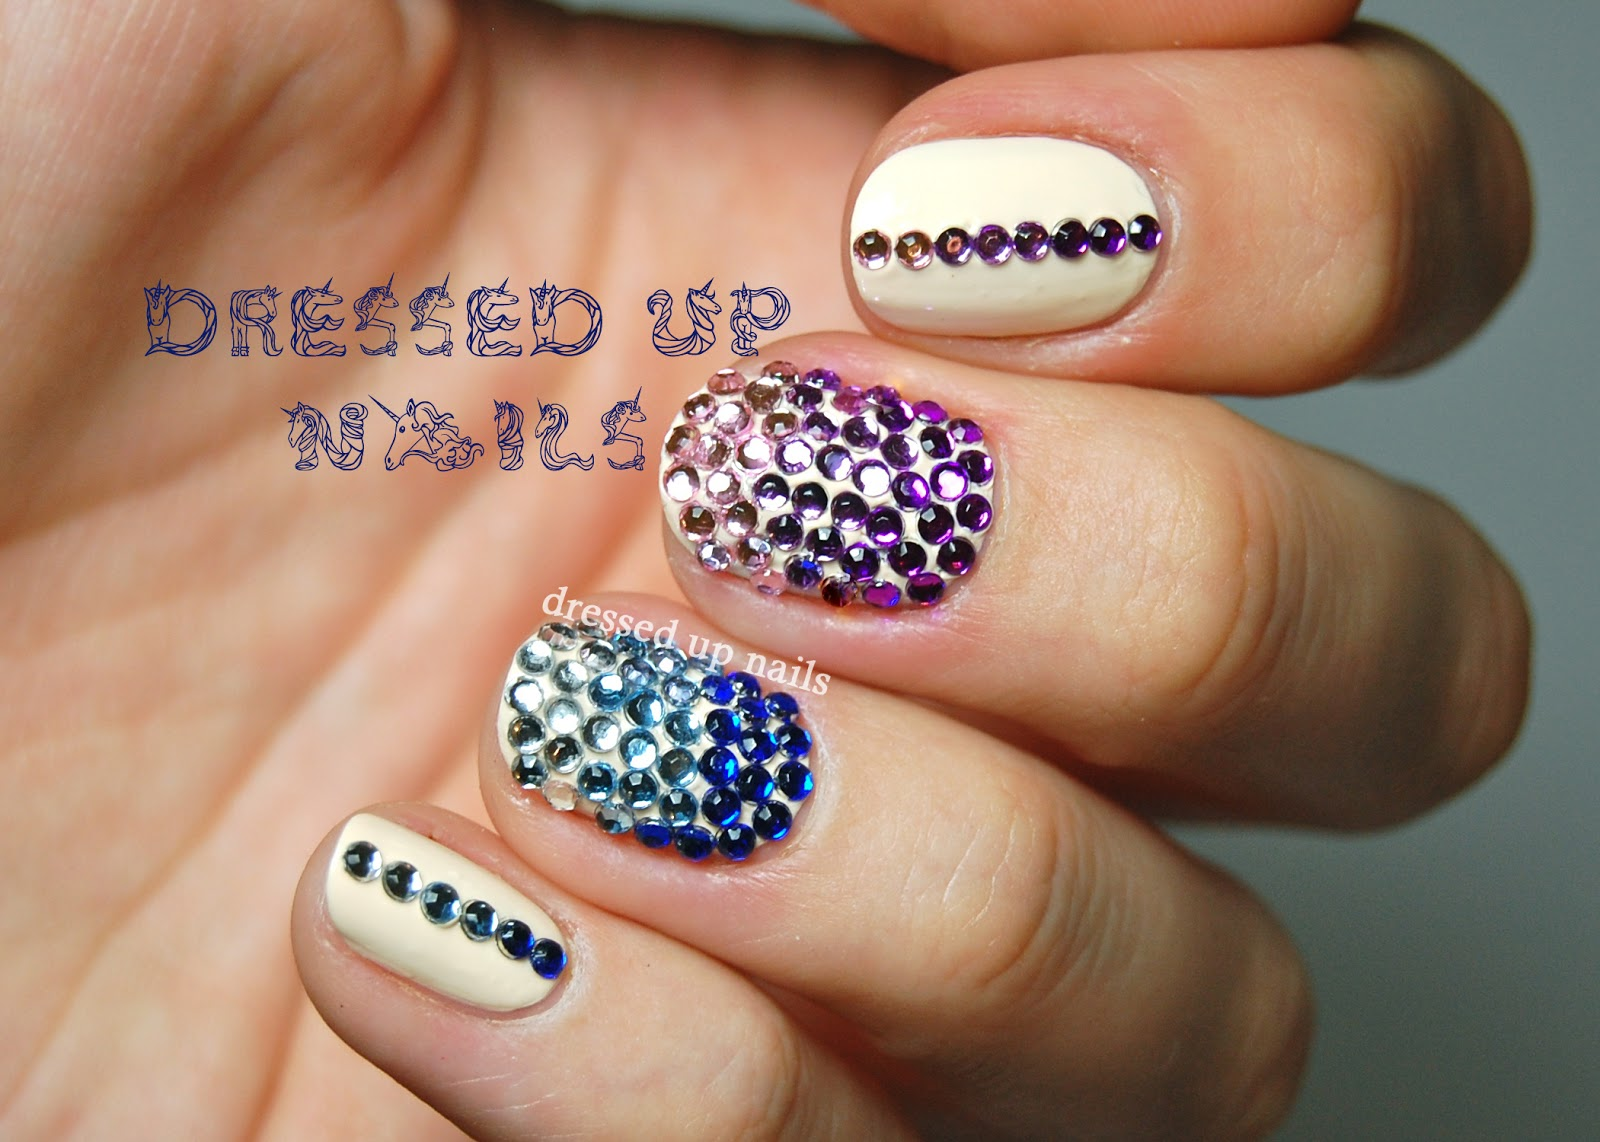 Nail Designs With Rhinestones 8 Nail Designs With Rh...